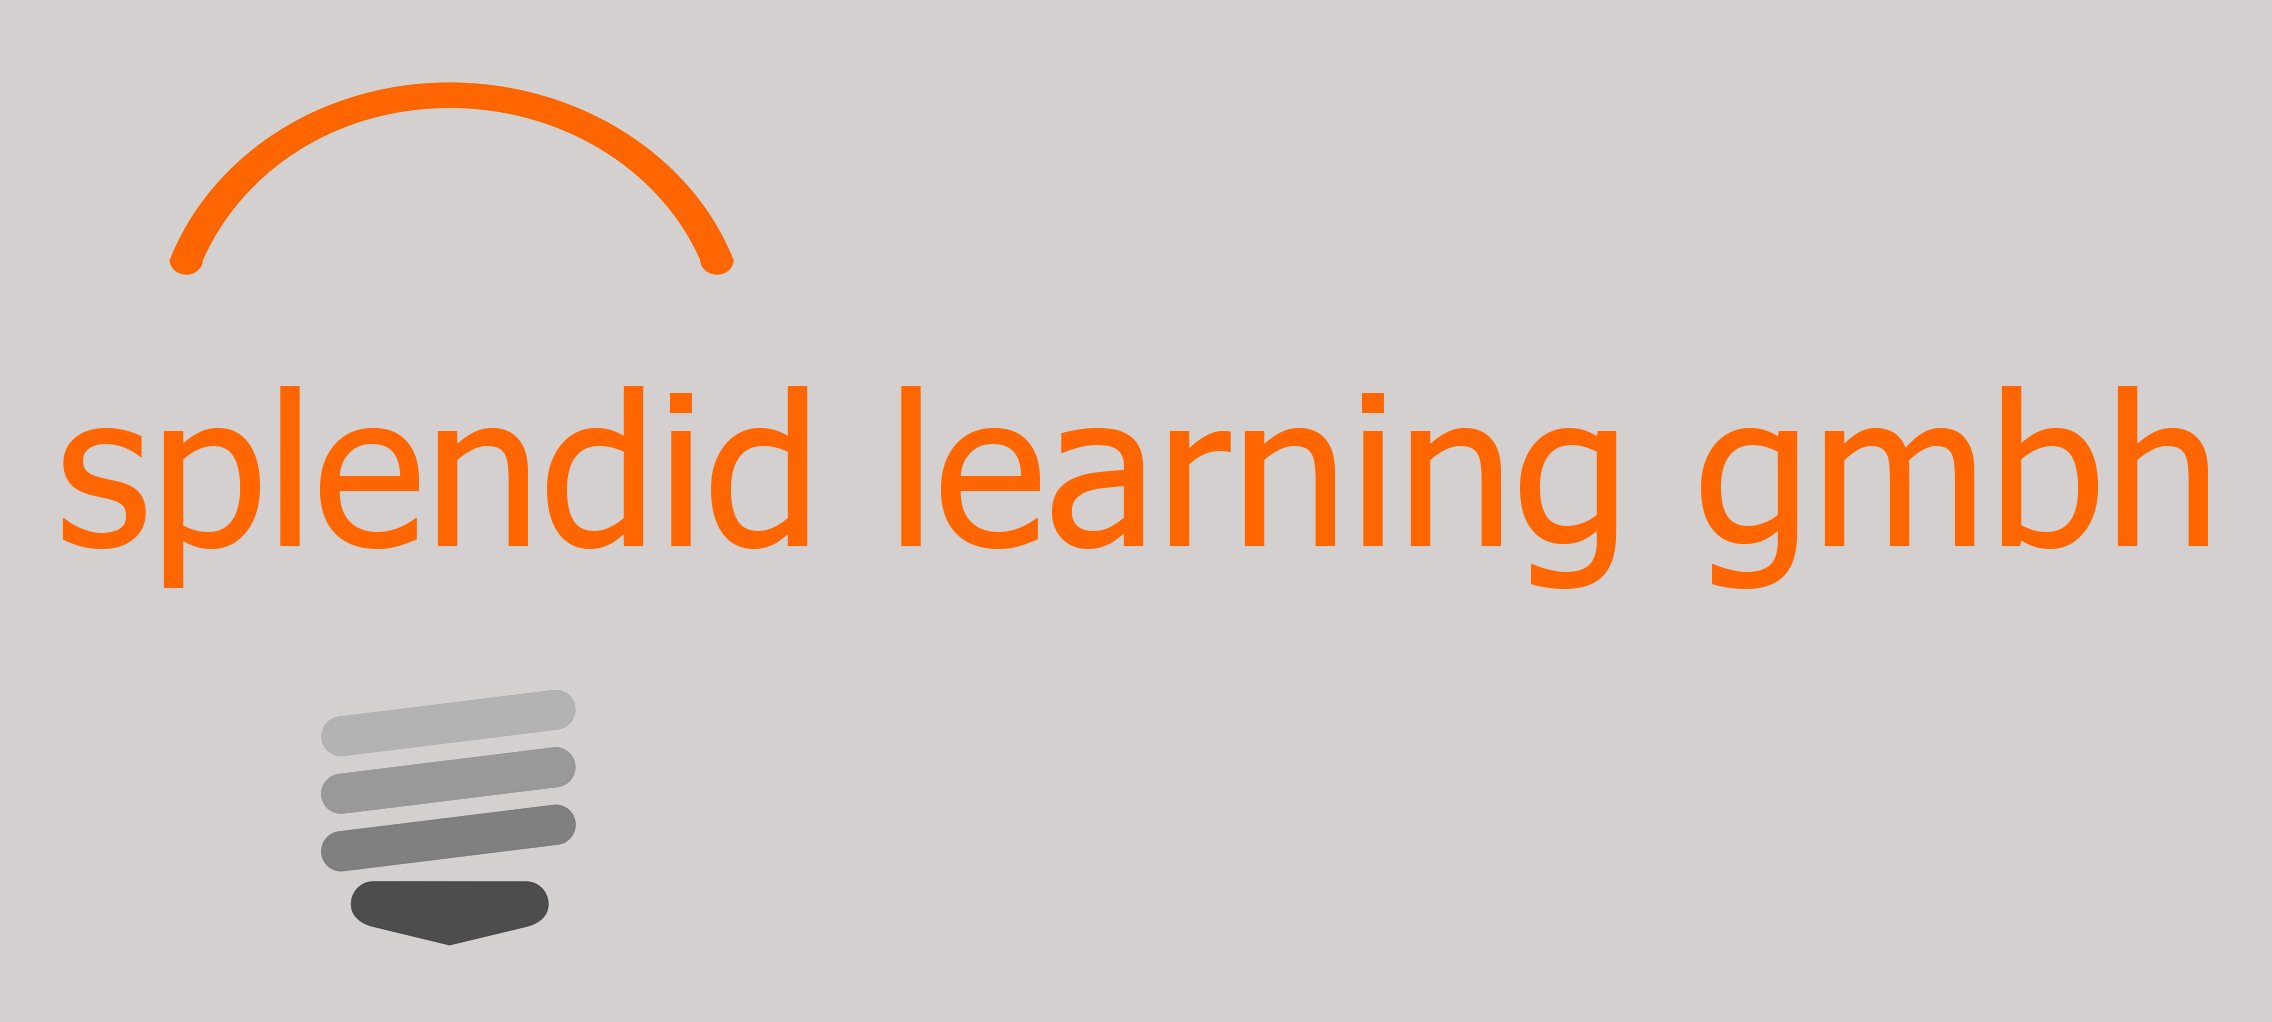 splendid learning gmbh